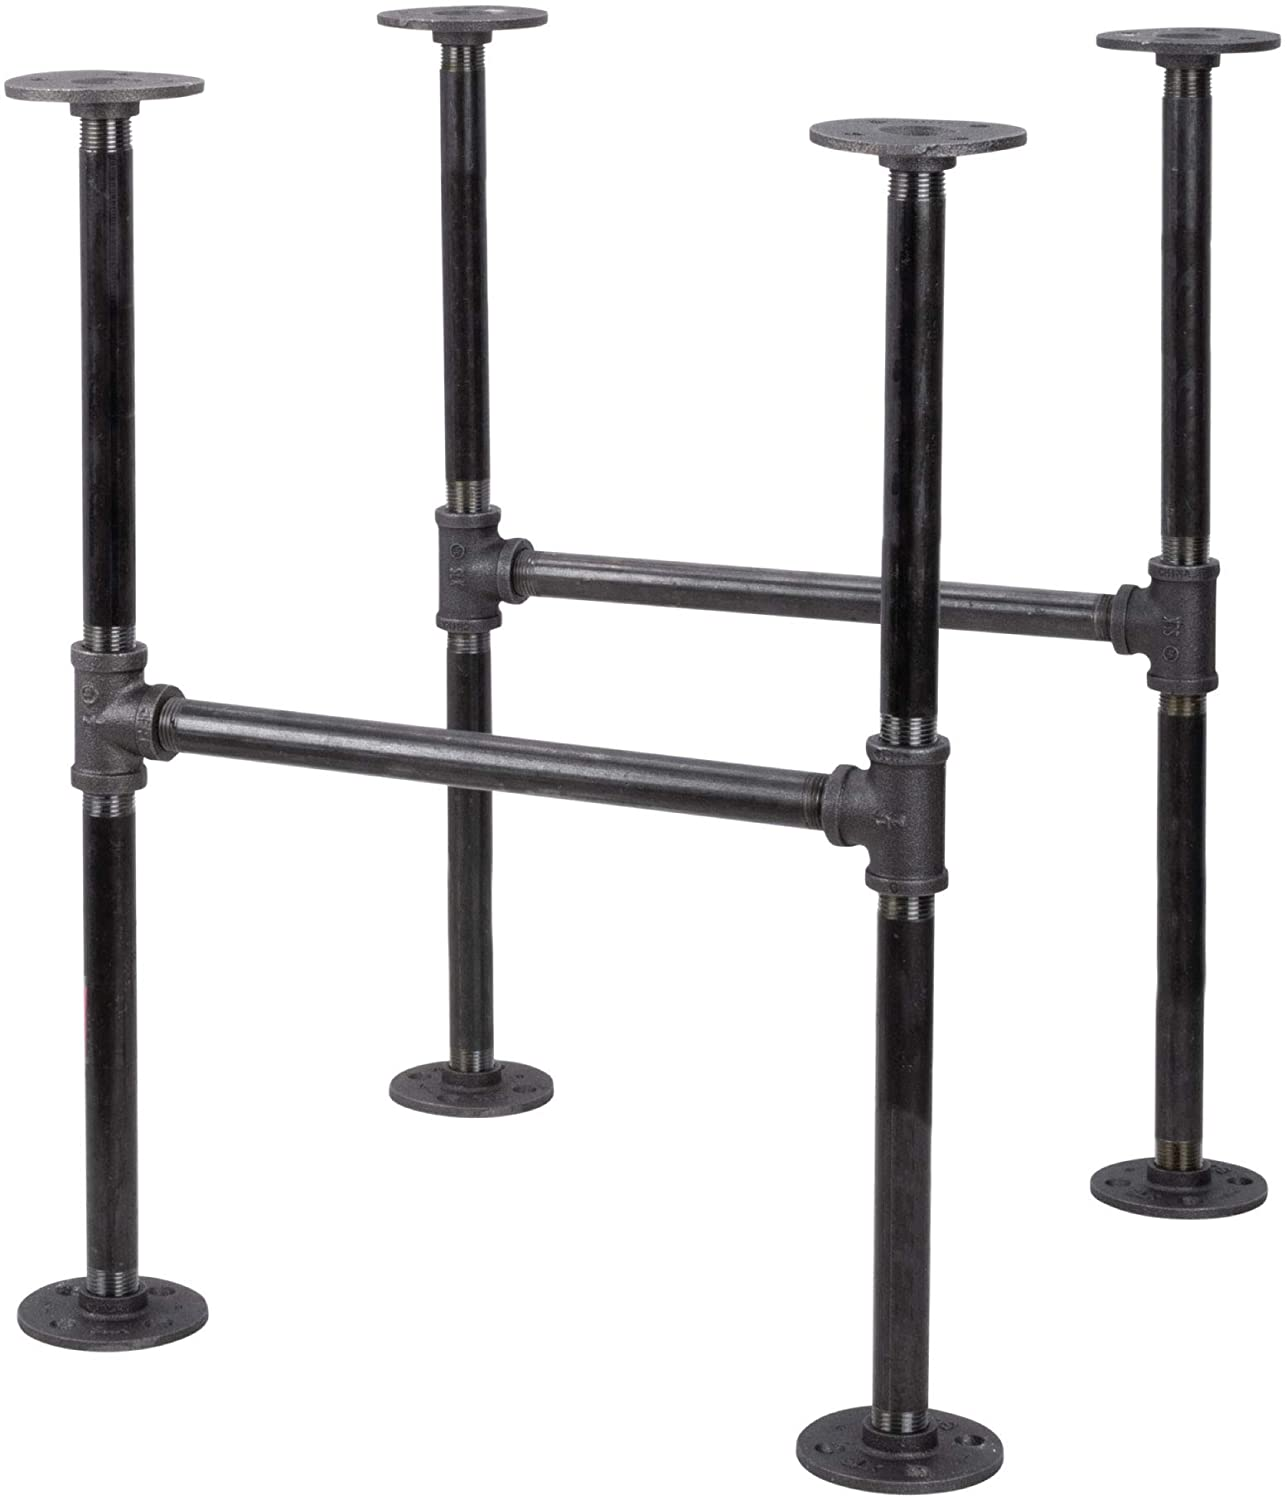 Amazon Com Industrial Pipe Decor Table Leg Set Rustic End Table Side Table Base Kit Dark Grey Black Steel Metal Pipes Vintage Furniture Decorations Diy Coffee Table Legs Mid Century Modern Double Decker Style